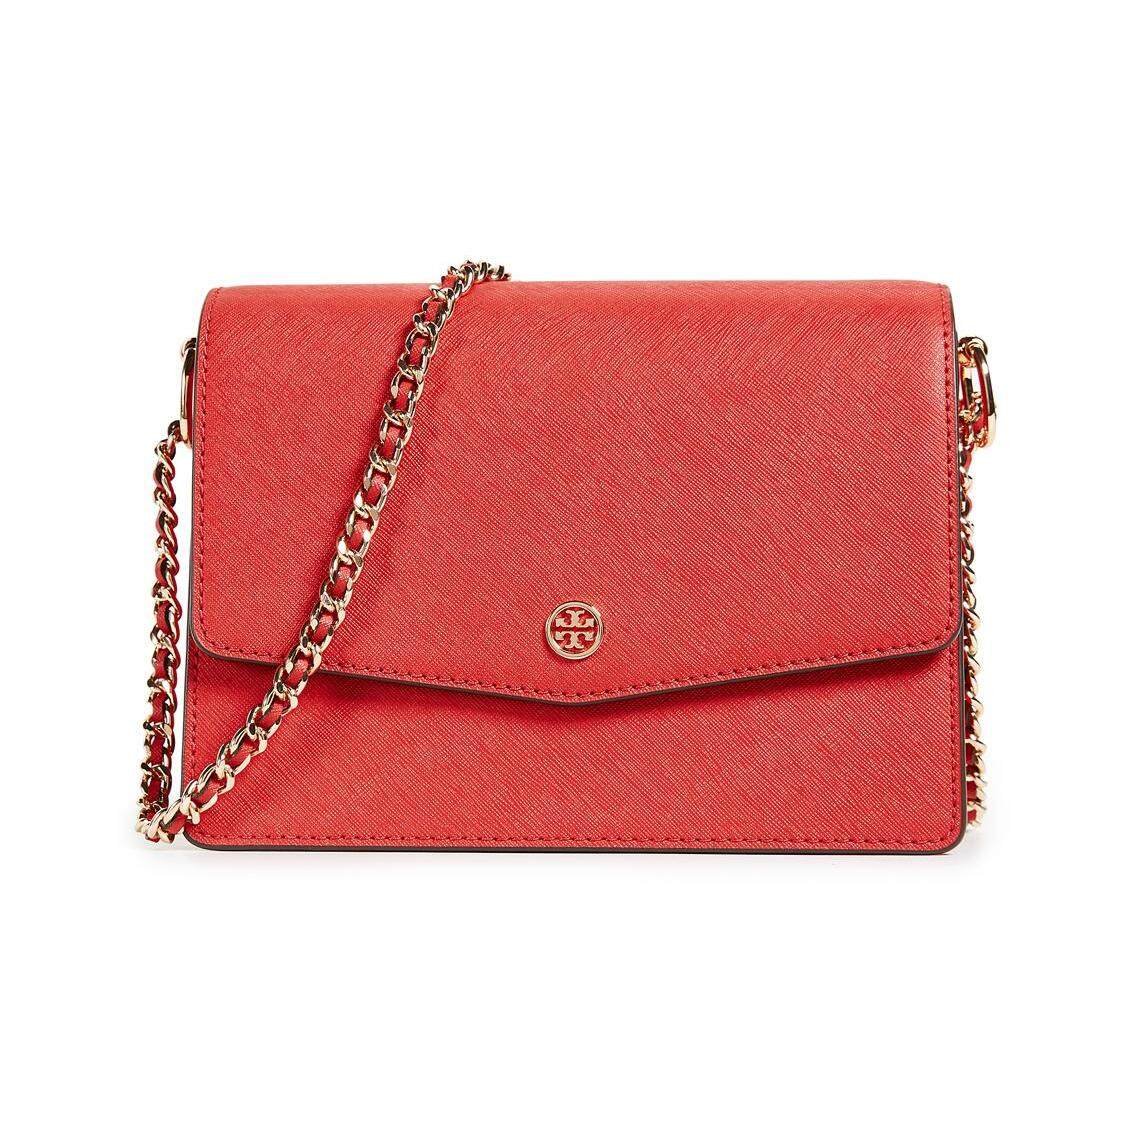 e89effe2923 Tory Burch Women Bags price in Malaysia - Best Tory Burch Women Bags ...